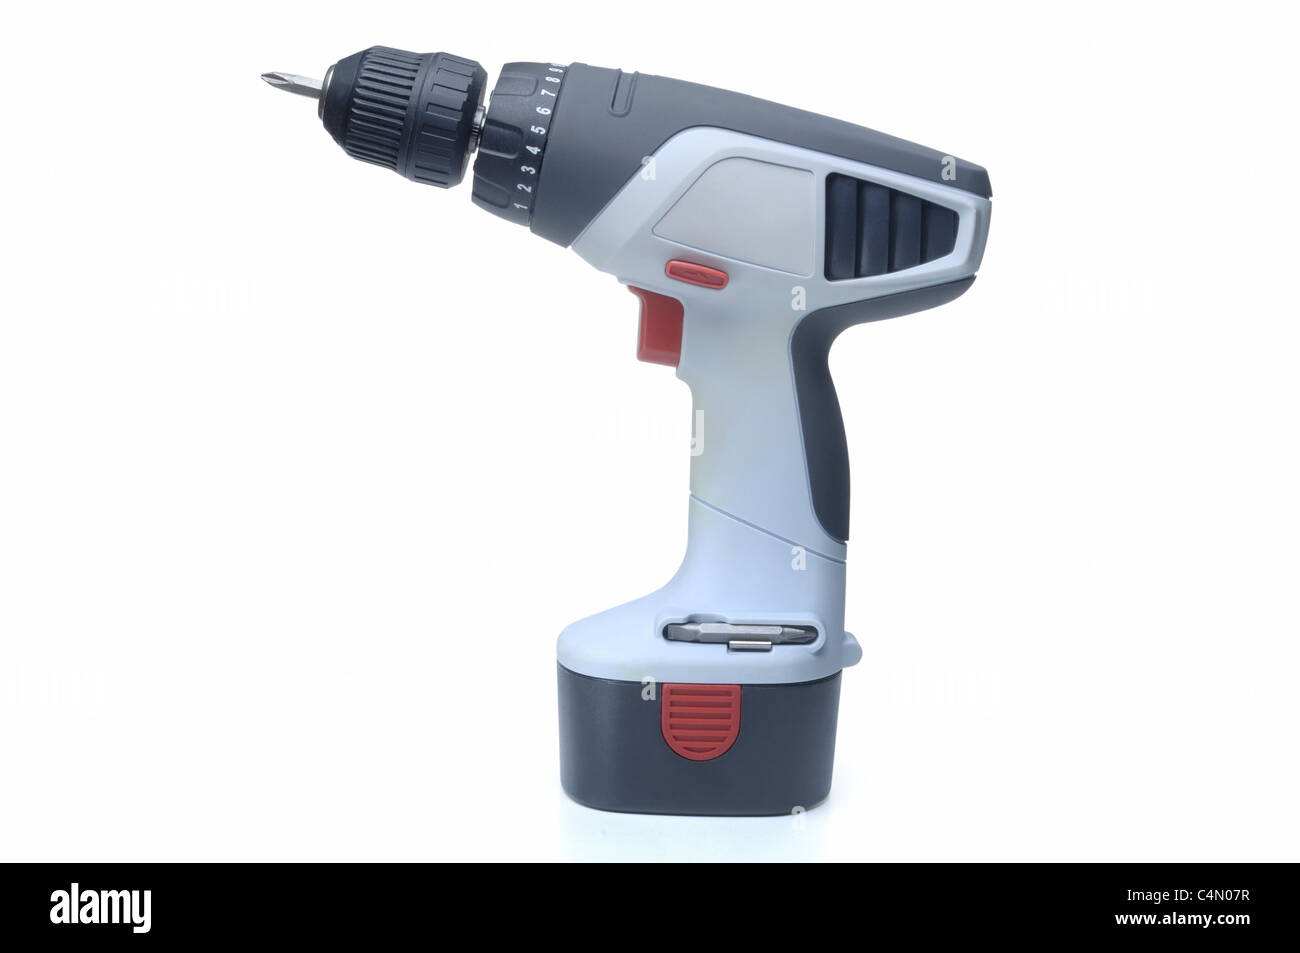 Power Tool - Stock Image